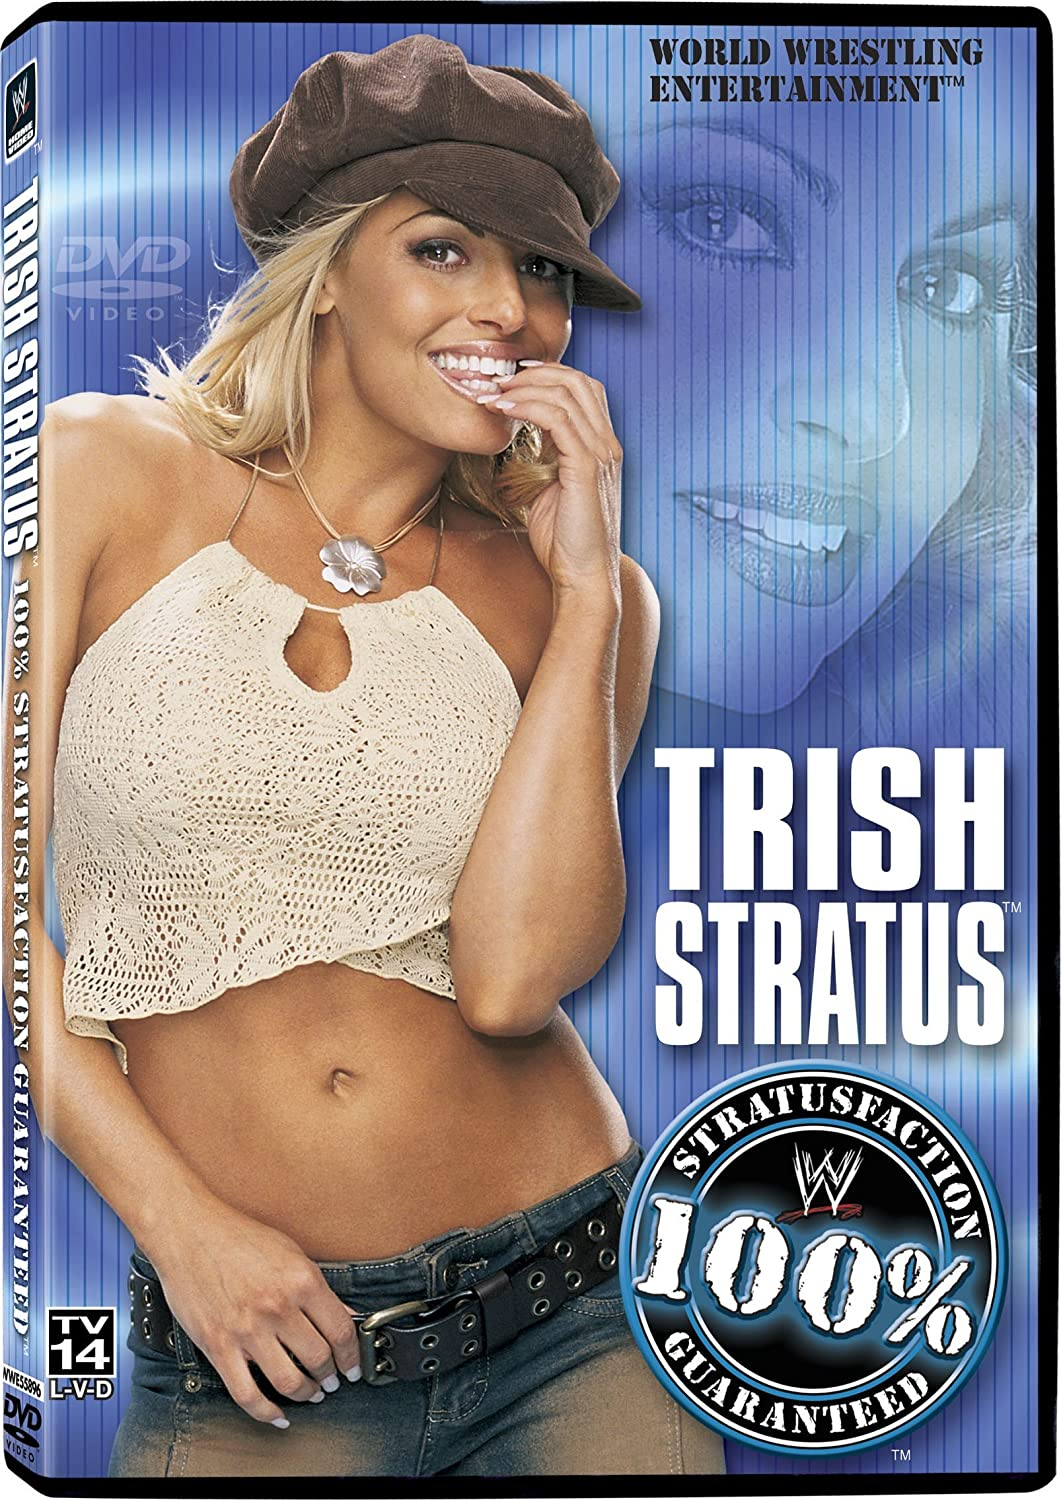 WWE: Reservation Trish Stratus - Guaranteed Stratusfaction Al sold out. 100%